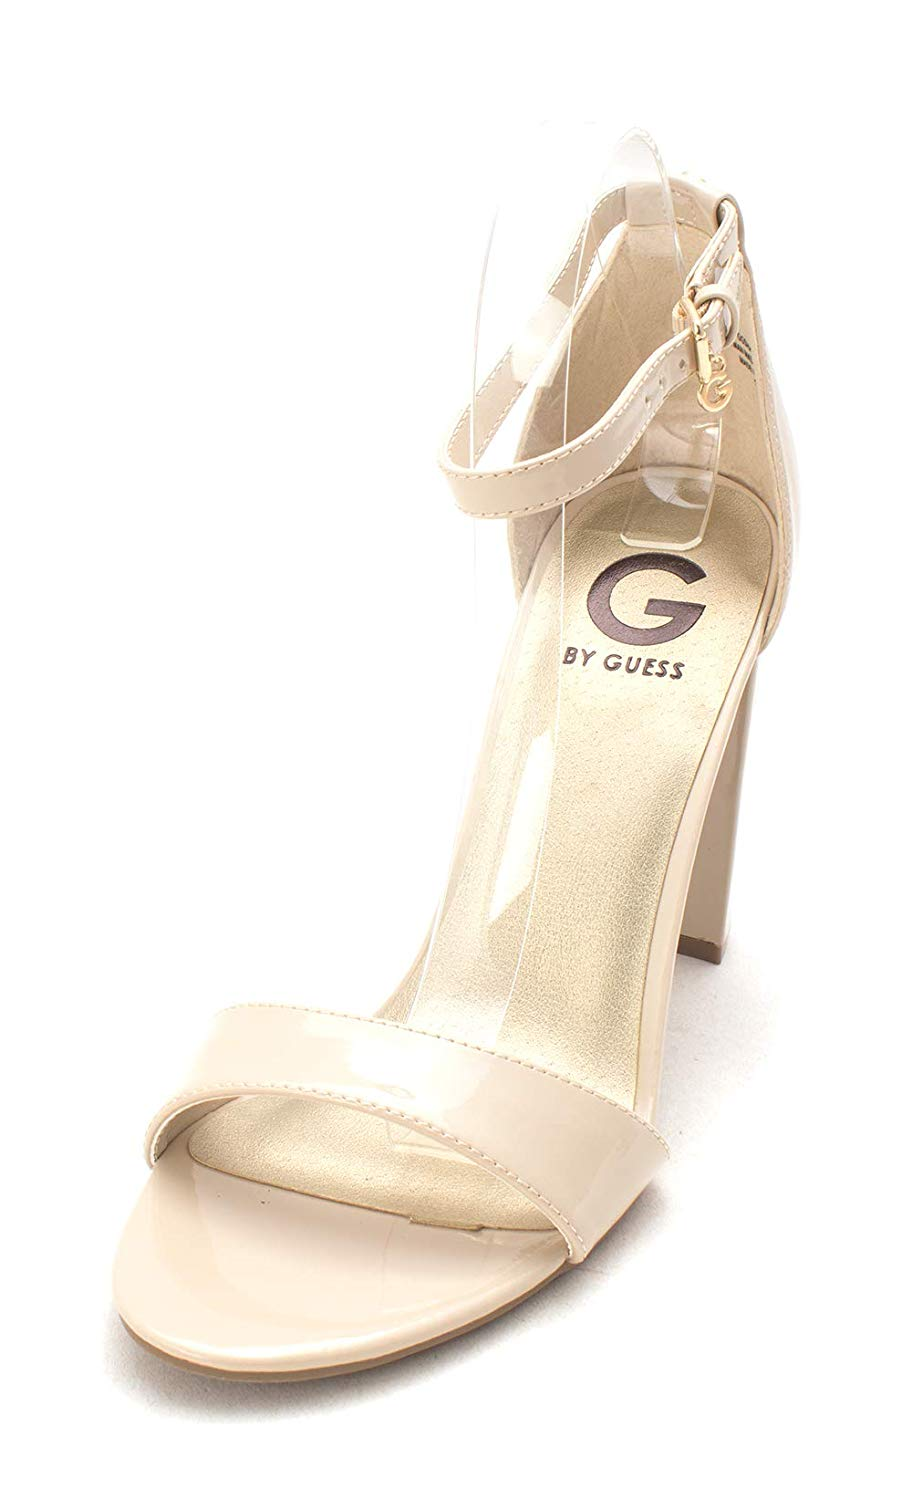 75cc2640e83 G by Guess - G By Guess Womens Shantel 3 Open Toe Casual Ankle Strap Sandals  - Walmart.com